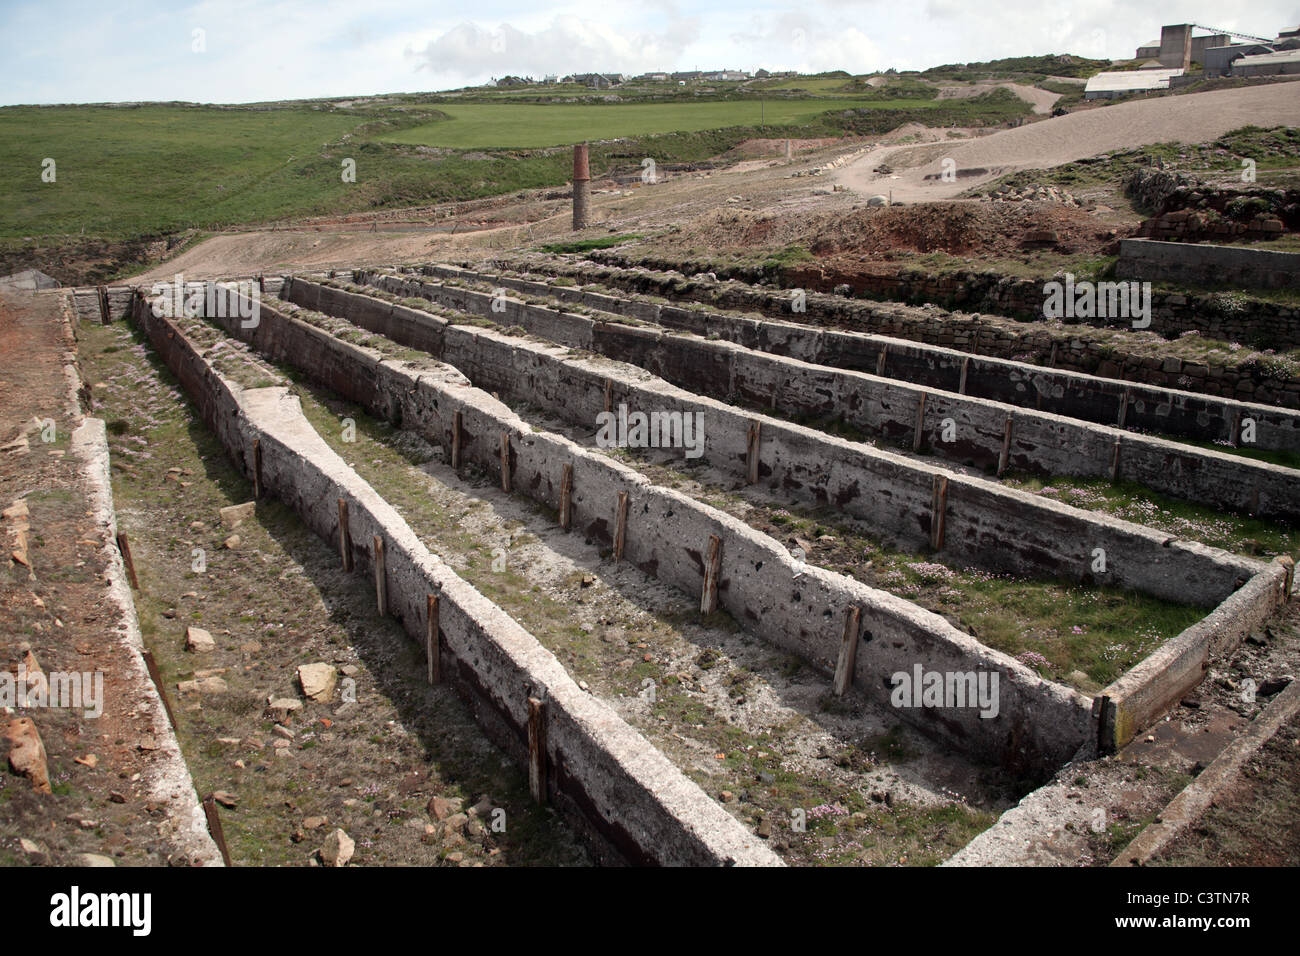 Remains of the Settling Tanks where Tin was extracted, Levant Tin Mine, St Just, Cornwall. - Stock Image